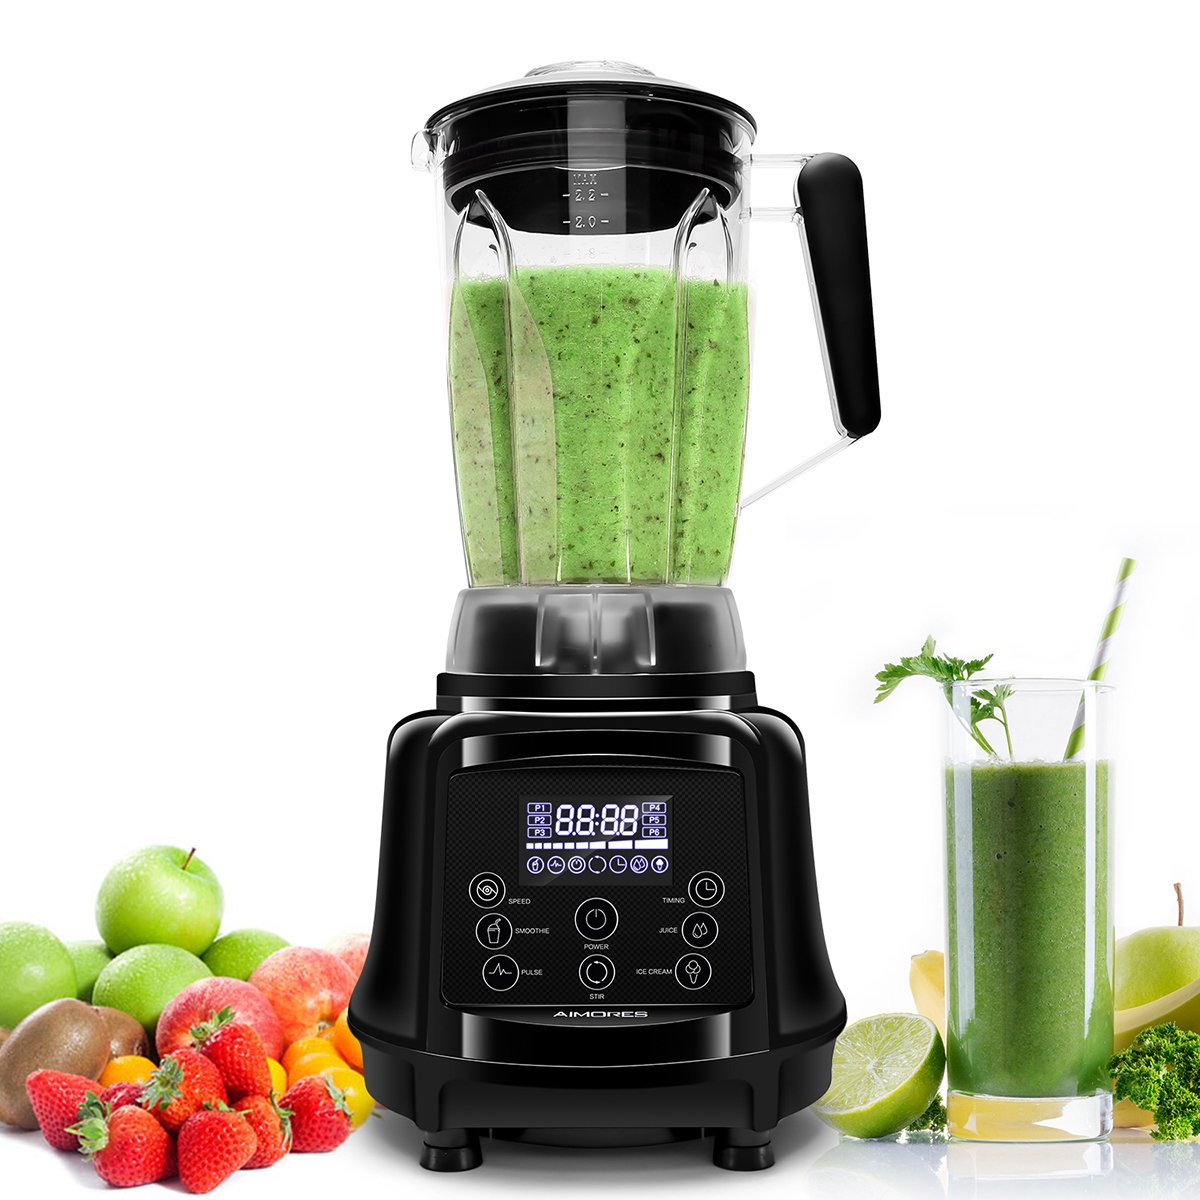 Professional Blender AIMORES, 75oz 3-in-1 Programmable Smoothie Juice Ice Cream Mixer, High Speed (28,000 rpm), Auto Clean & Timing, 6 SS Blades - ETL/FDA Approved - w/ Tamper & Recipe (Black) by Aimores